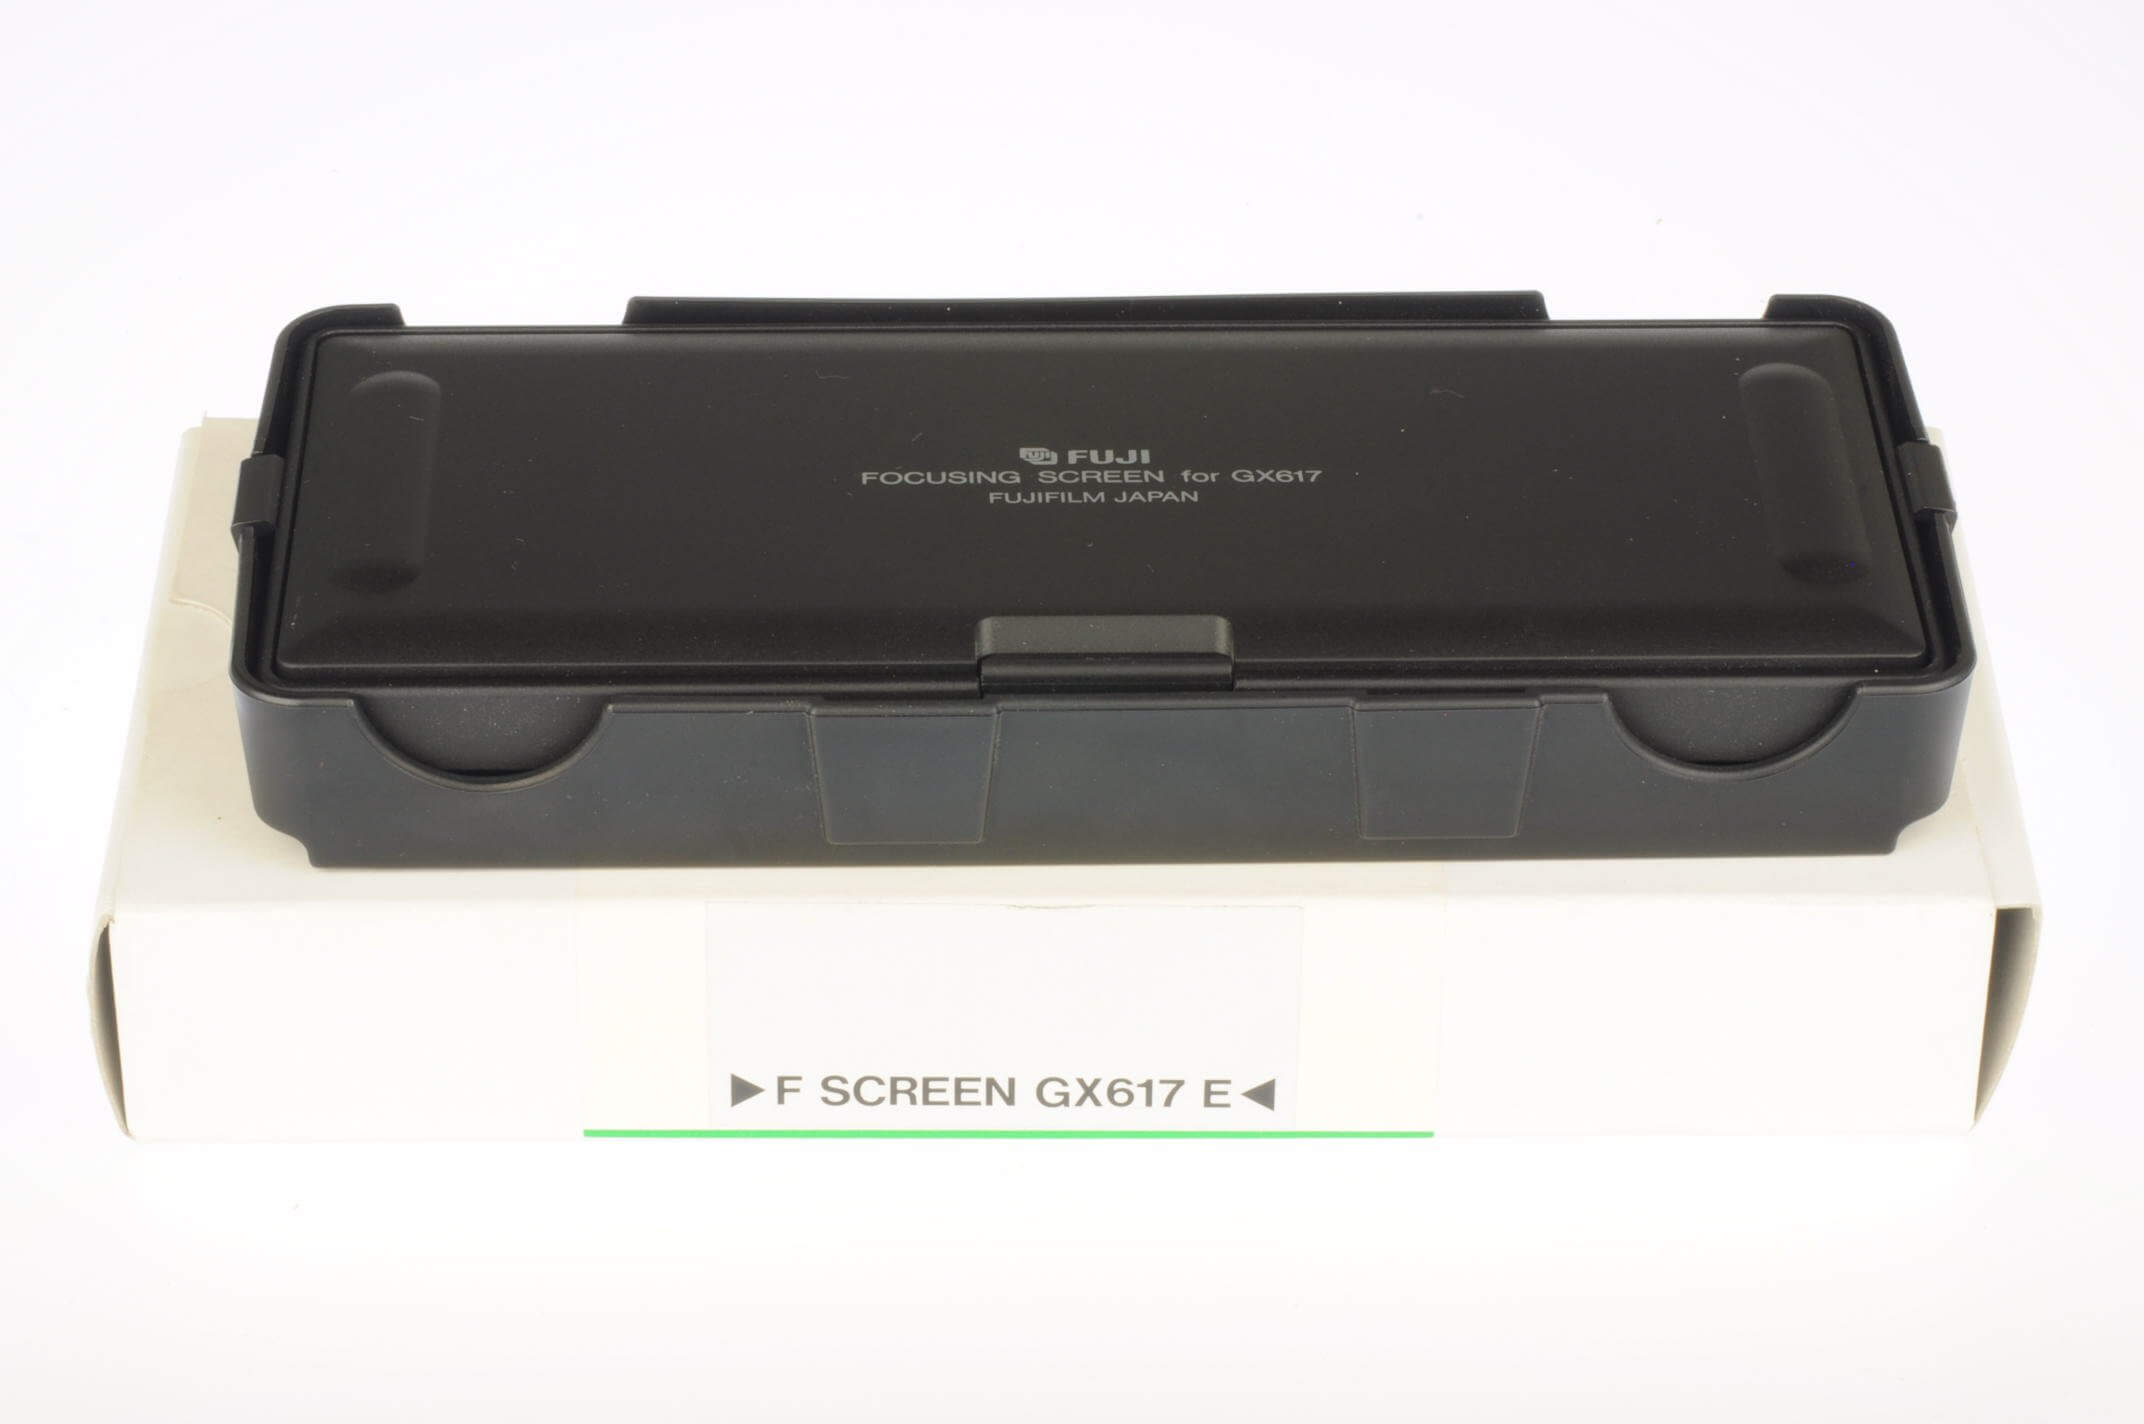 Fuji focussing screen for GX617, almost mint!